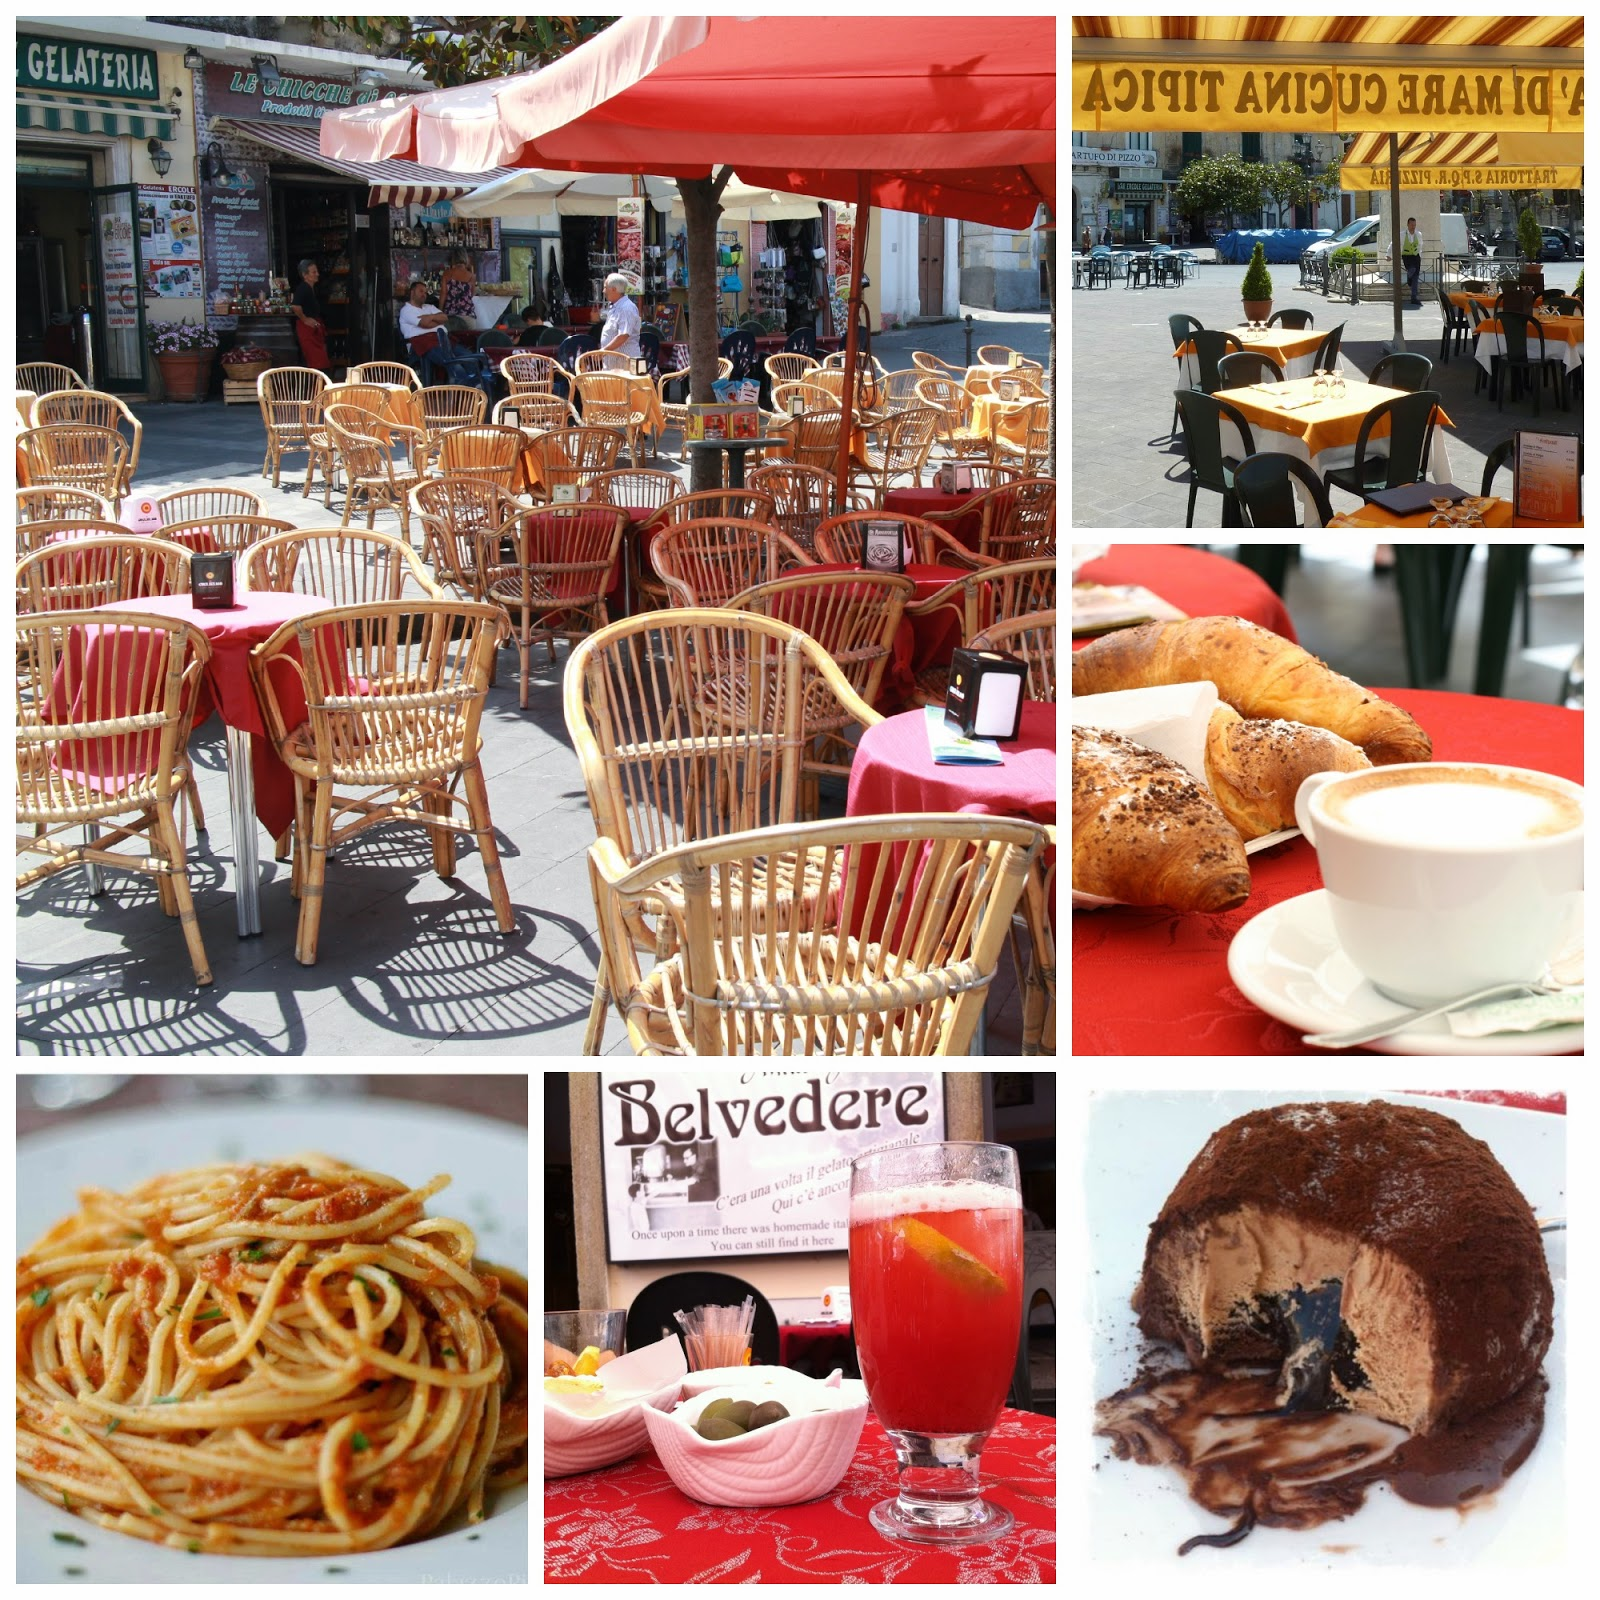 good choice of bars and restaurants in Pizzo